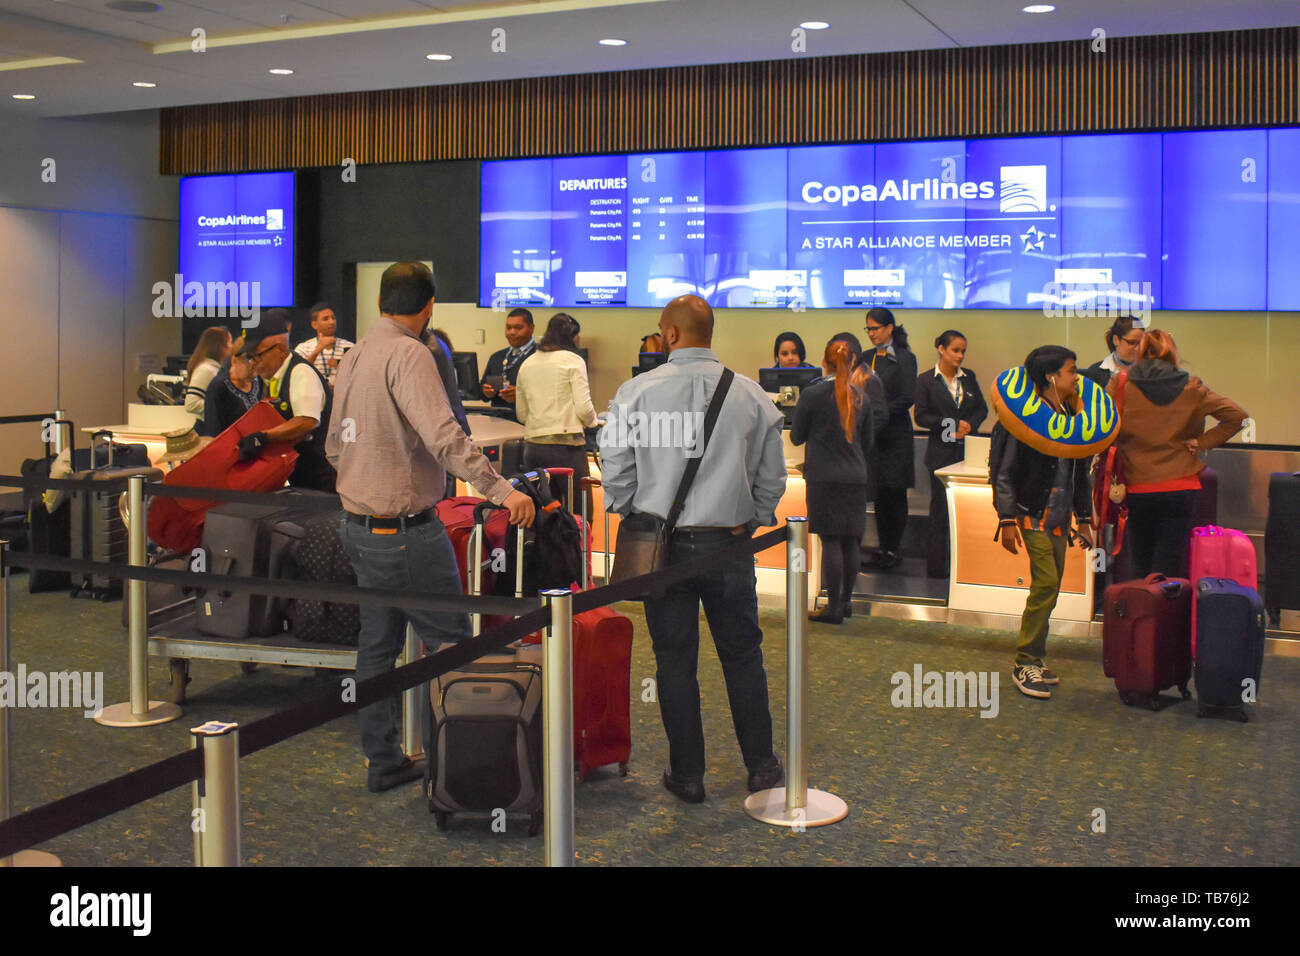 Orlando, Florida.  March 01, 2019. People doing check-in at Copa Airlines counter at Orlando International Airport . - Stock Image